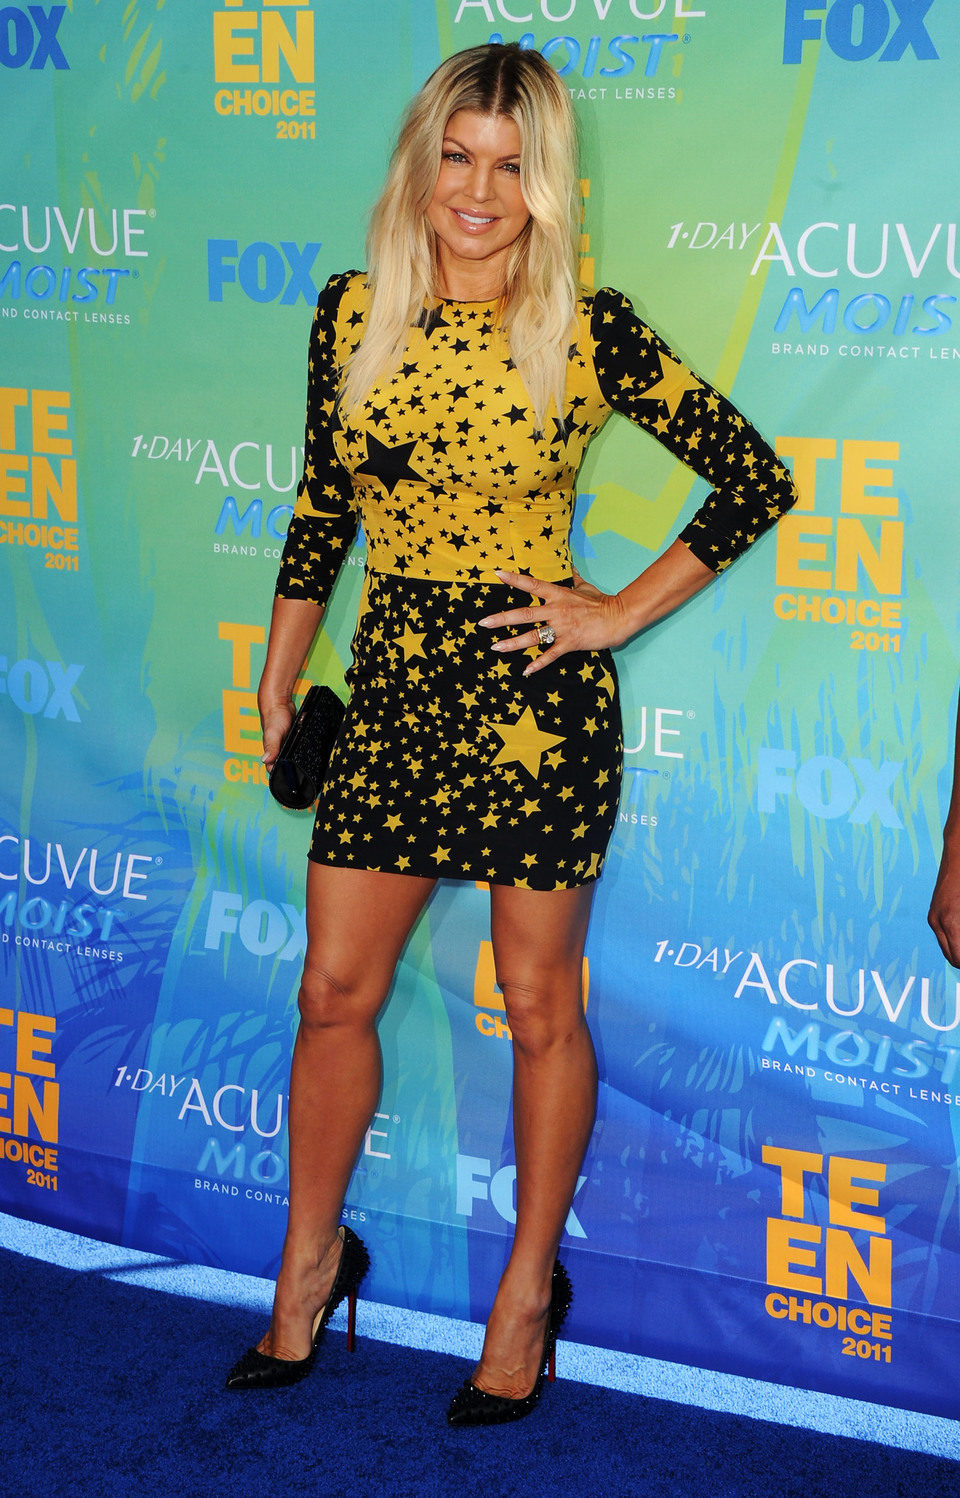 Fergie en el photocall de los Teen Choice Awards 2011